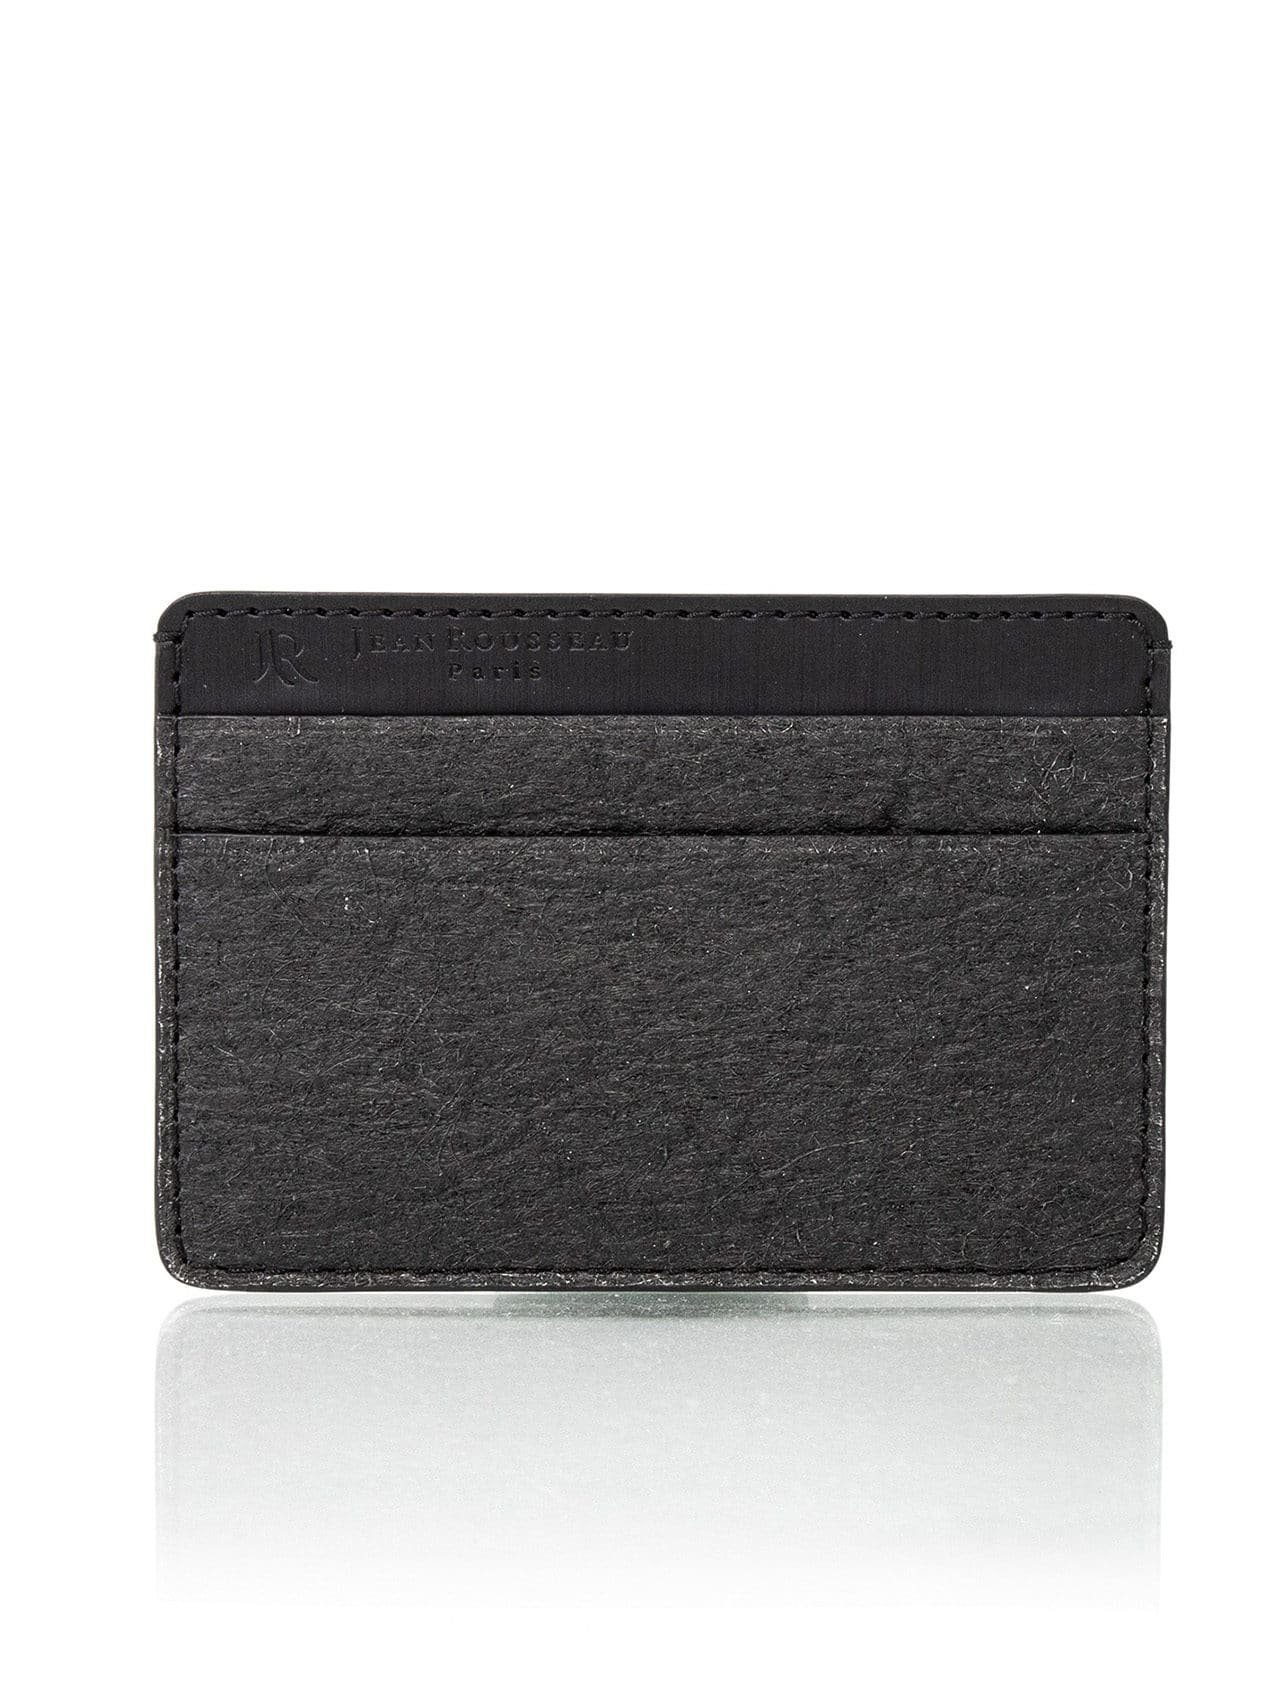 vegan card holder